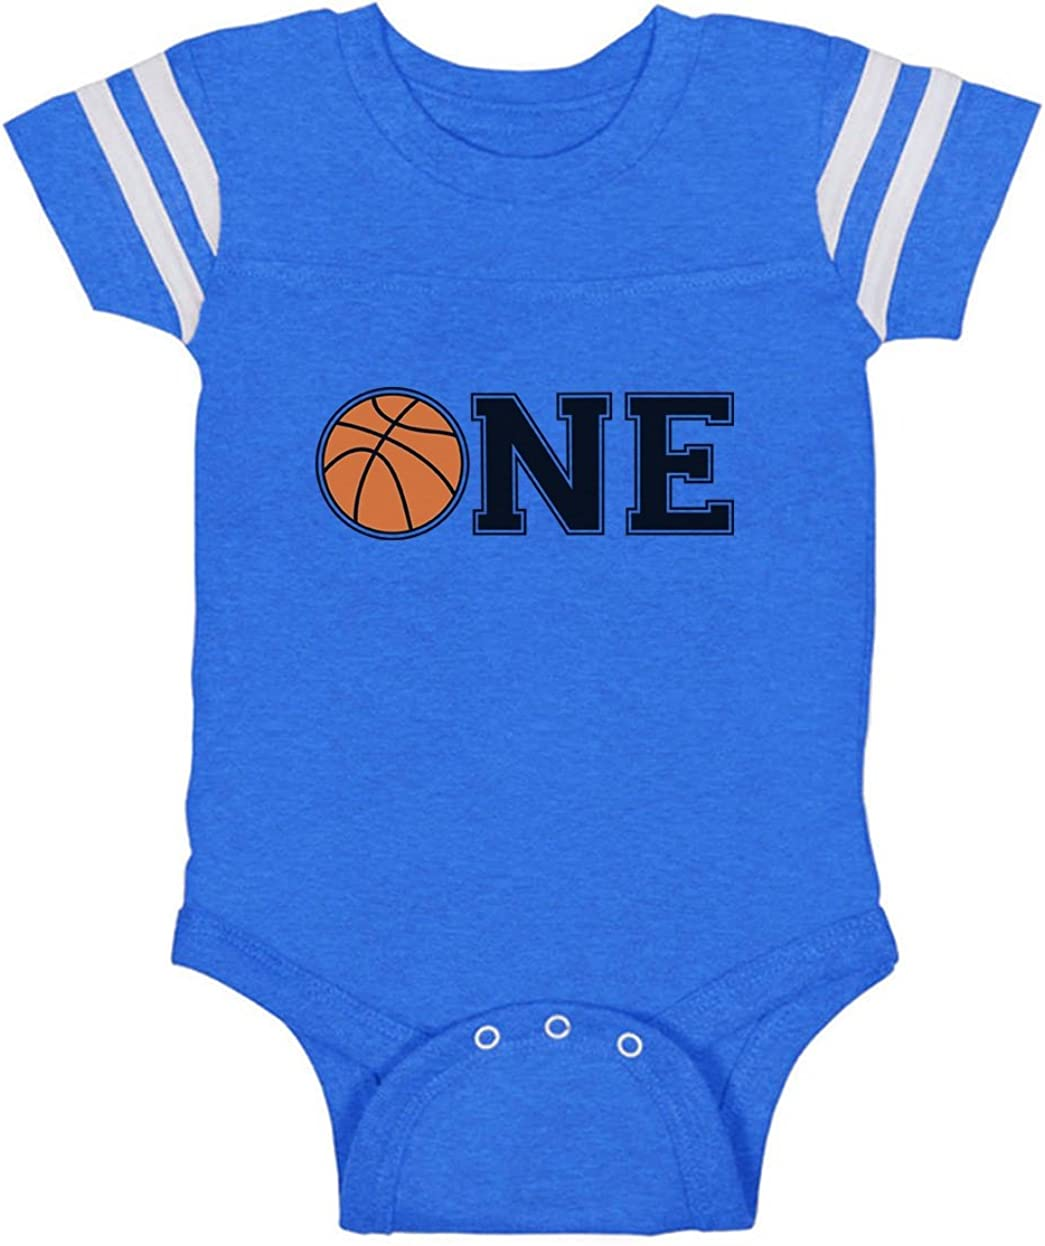 1st Birthday Gift for One Year Old Infant Basketball Baby Jersey Bodysuit